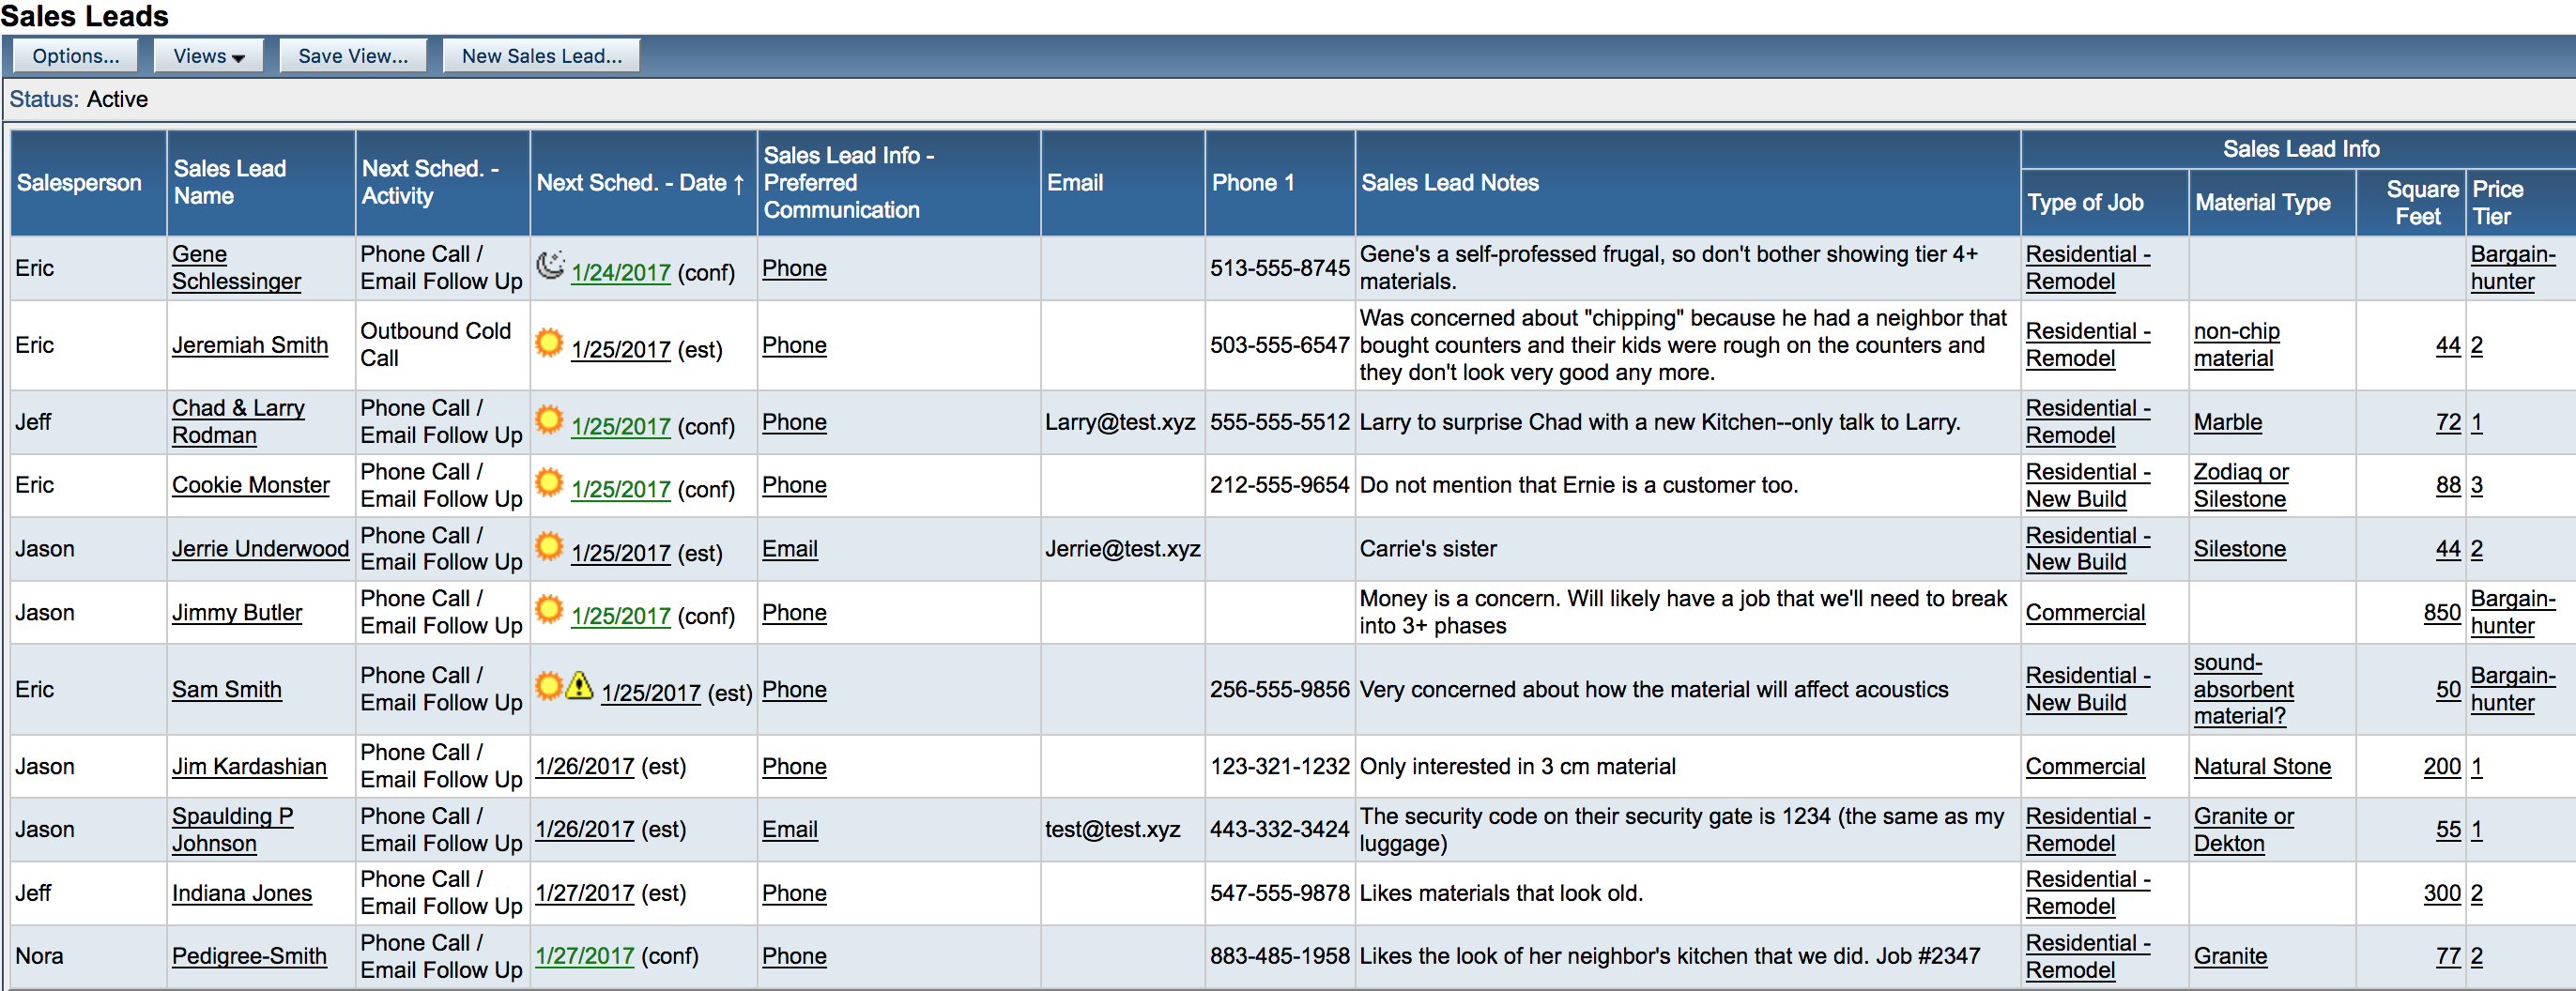 s leads creating lead views moraware countergo jobtracker help example of all active s leads view